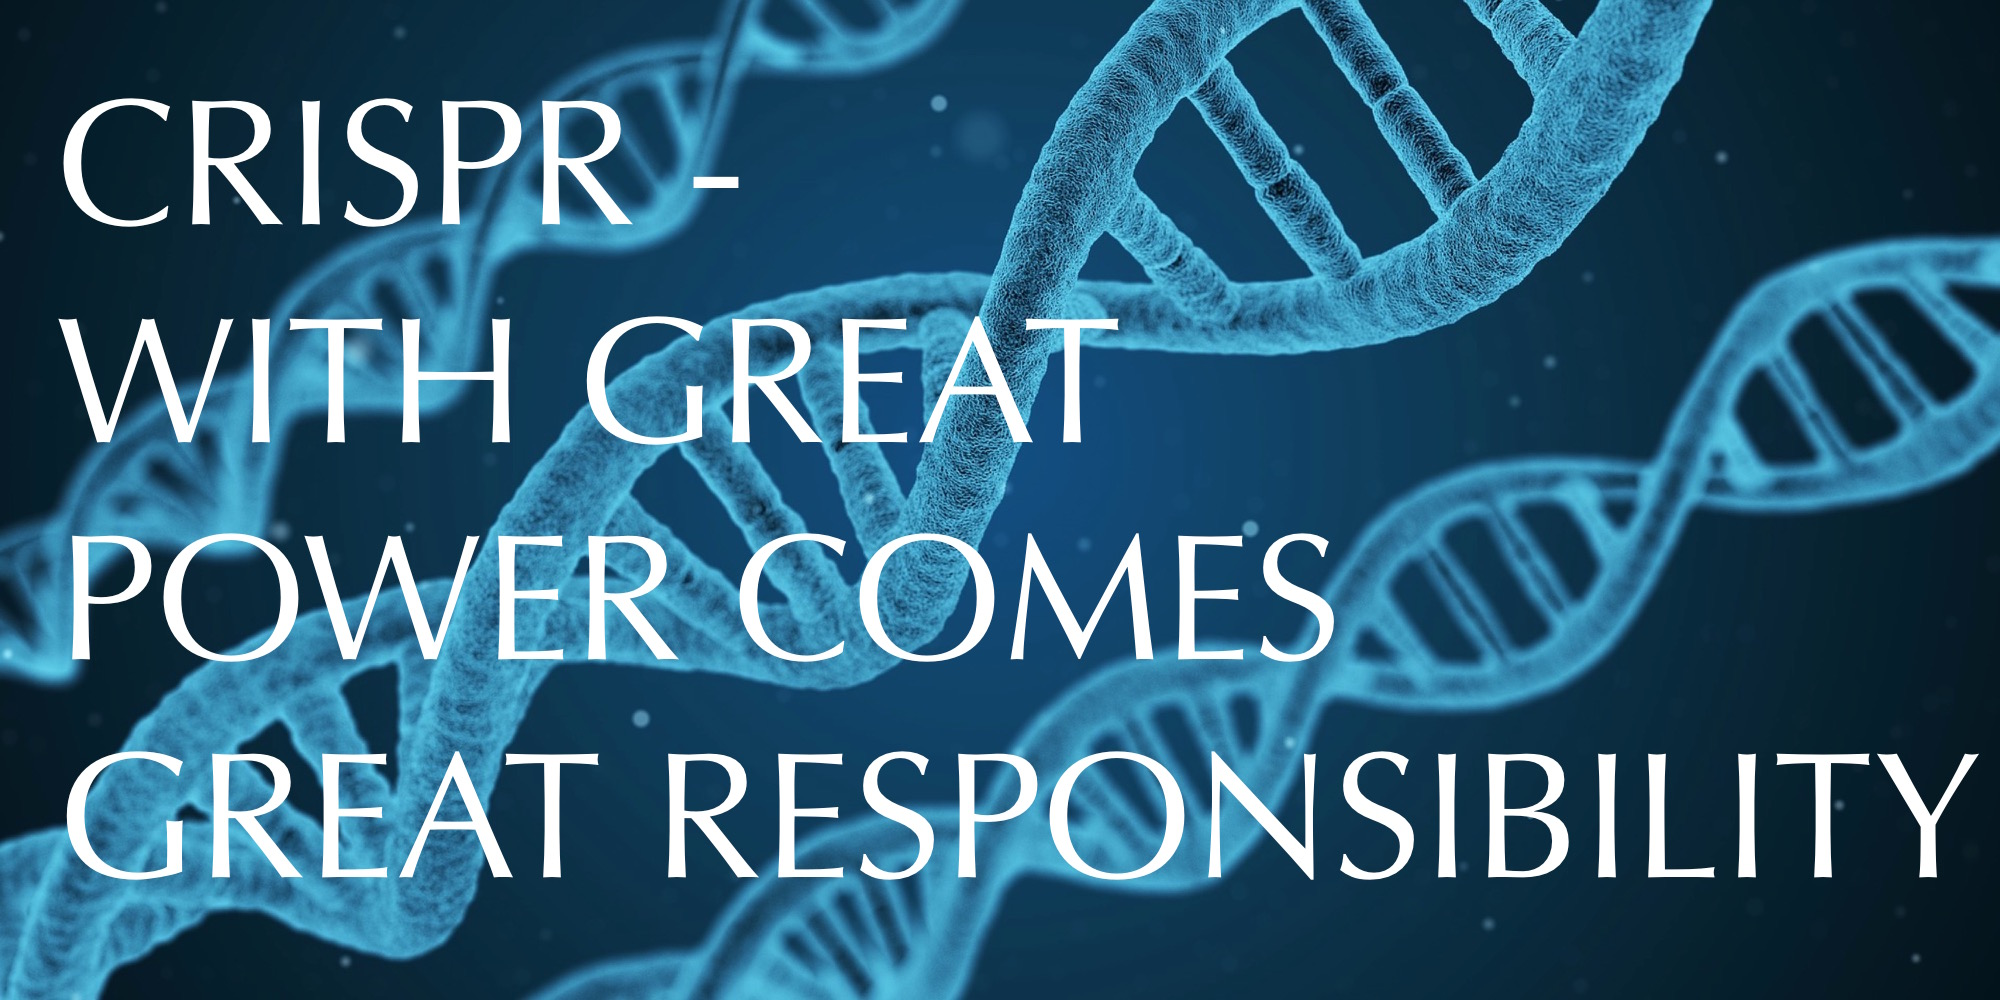 CRISPR- With Great Power Comes Great Responsibility